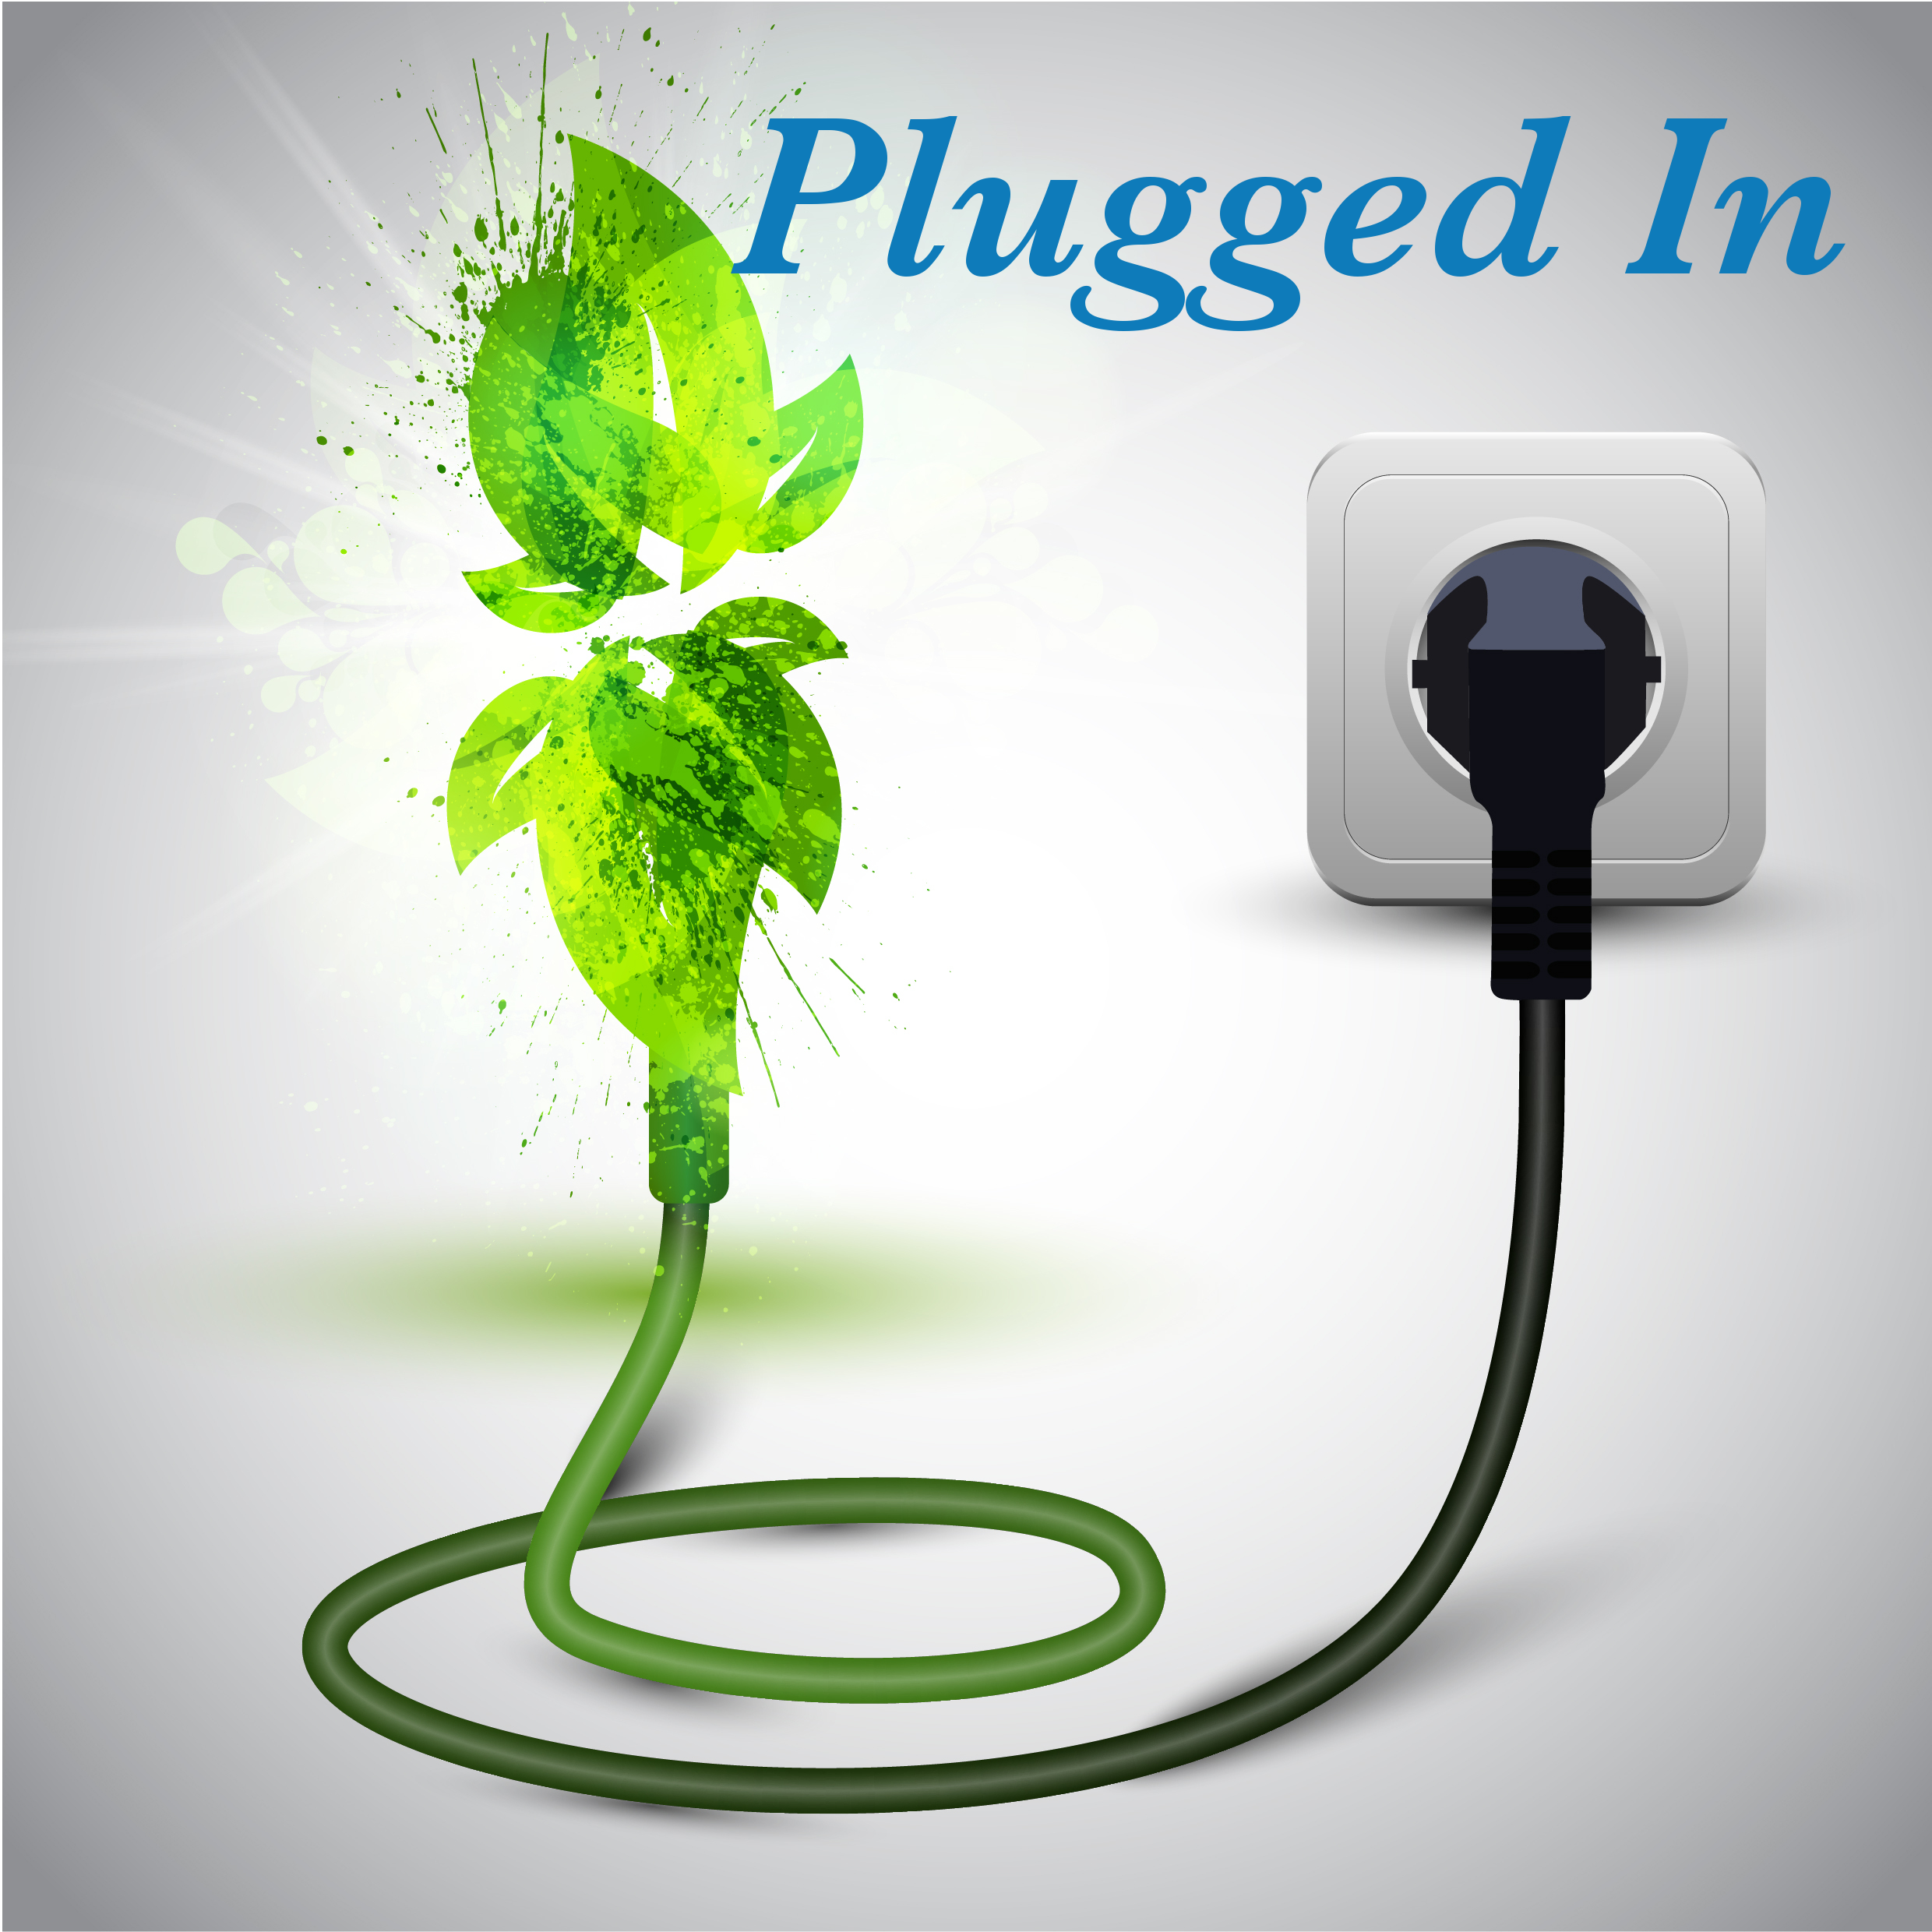 Plugged In Title.png